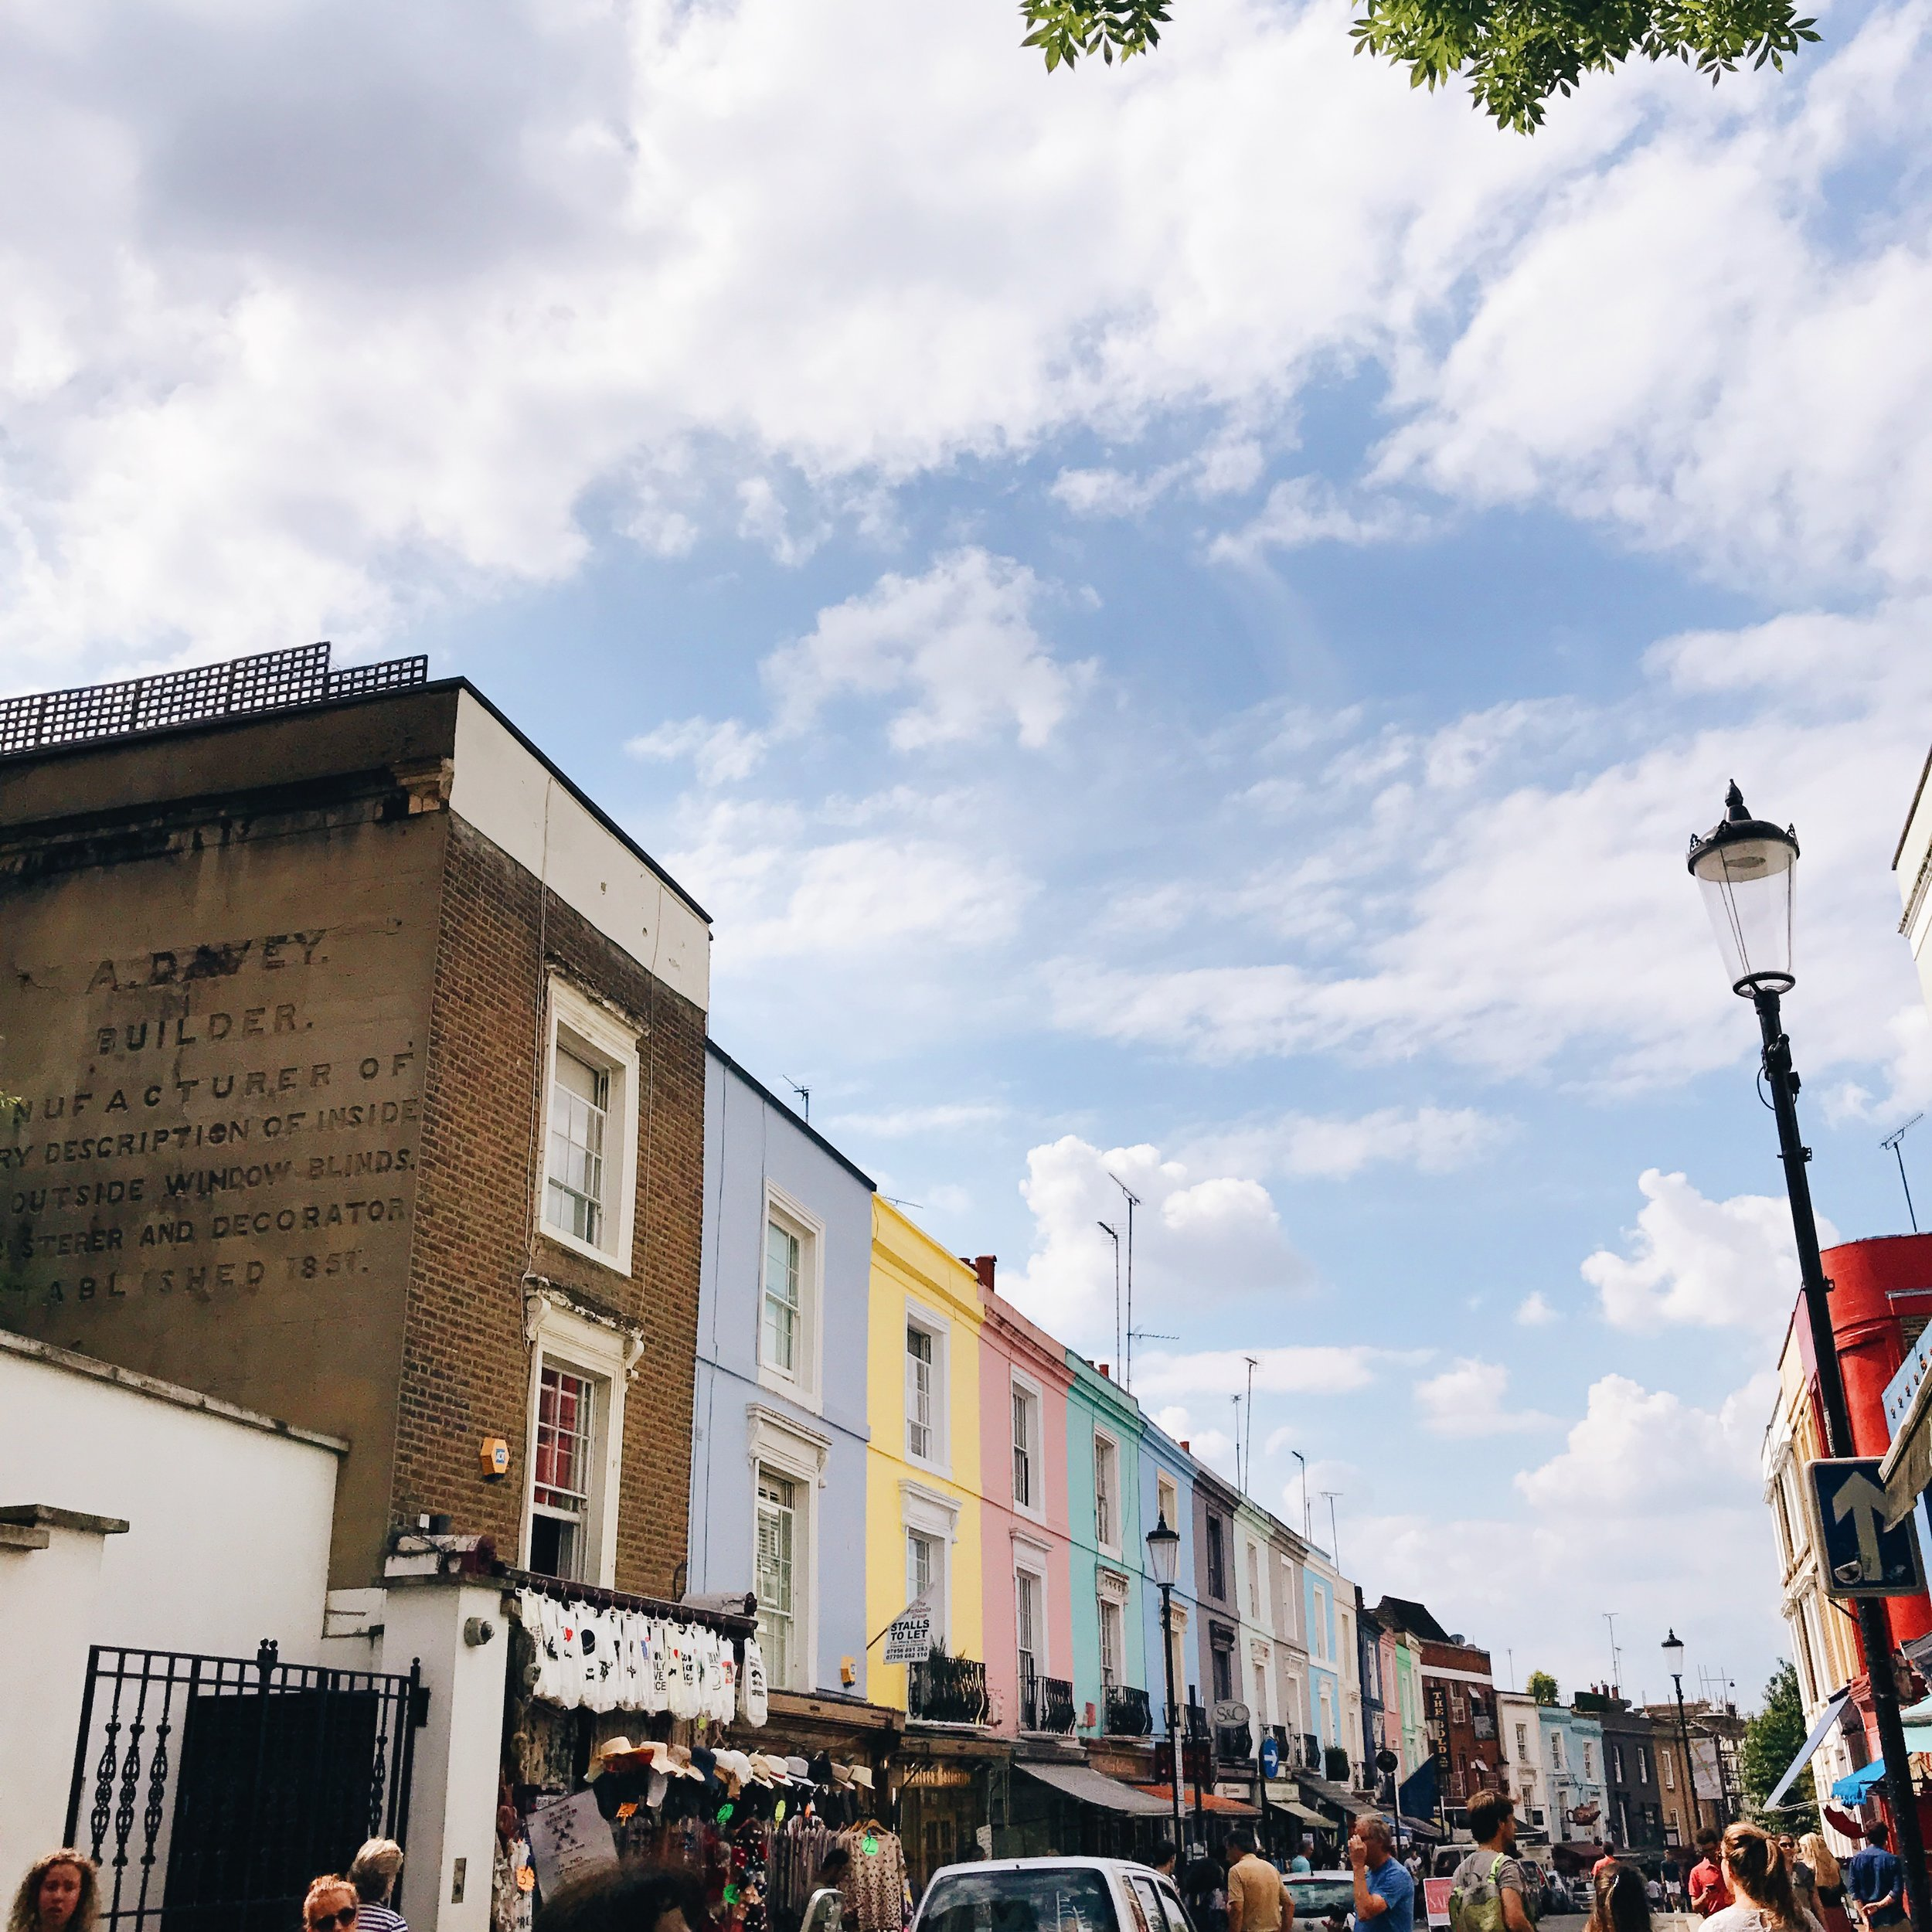 Obviously, we found  Portobello Road and it's market . The day we visited, it was the most beautiful day, and so the whole street was filled with stalls and people, and there was something about the hustle and bustle that really brought the place to life and it was lovely.  After taking hundreds of photos of the colourful houses, we went to find   the blue door   from the movie ( and if you don't know what I'm talking about then I'm not sure we can friends anymore tbh ;)  ). Although, I'm not going to lie... it's literally just a blue door. It's someone's front door and a little underwhelming when you finally find it, haha!  If I had enough money, I would absolutely move to Notting Hill.  It's so pretty, elegant and there's just something about it that made me happy . My aim is get back here soon and spend the whole day there, wandering around again, but also finding some of those amazing places to eat and drink, too!